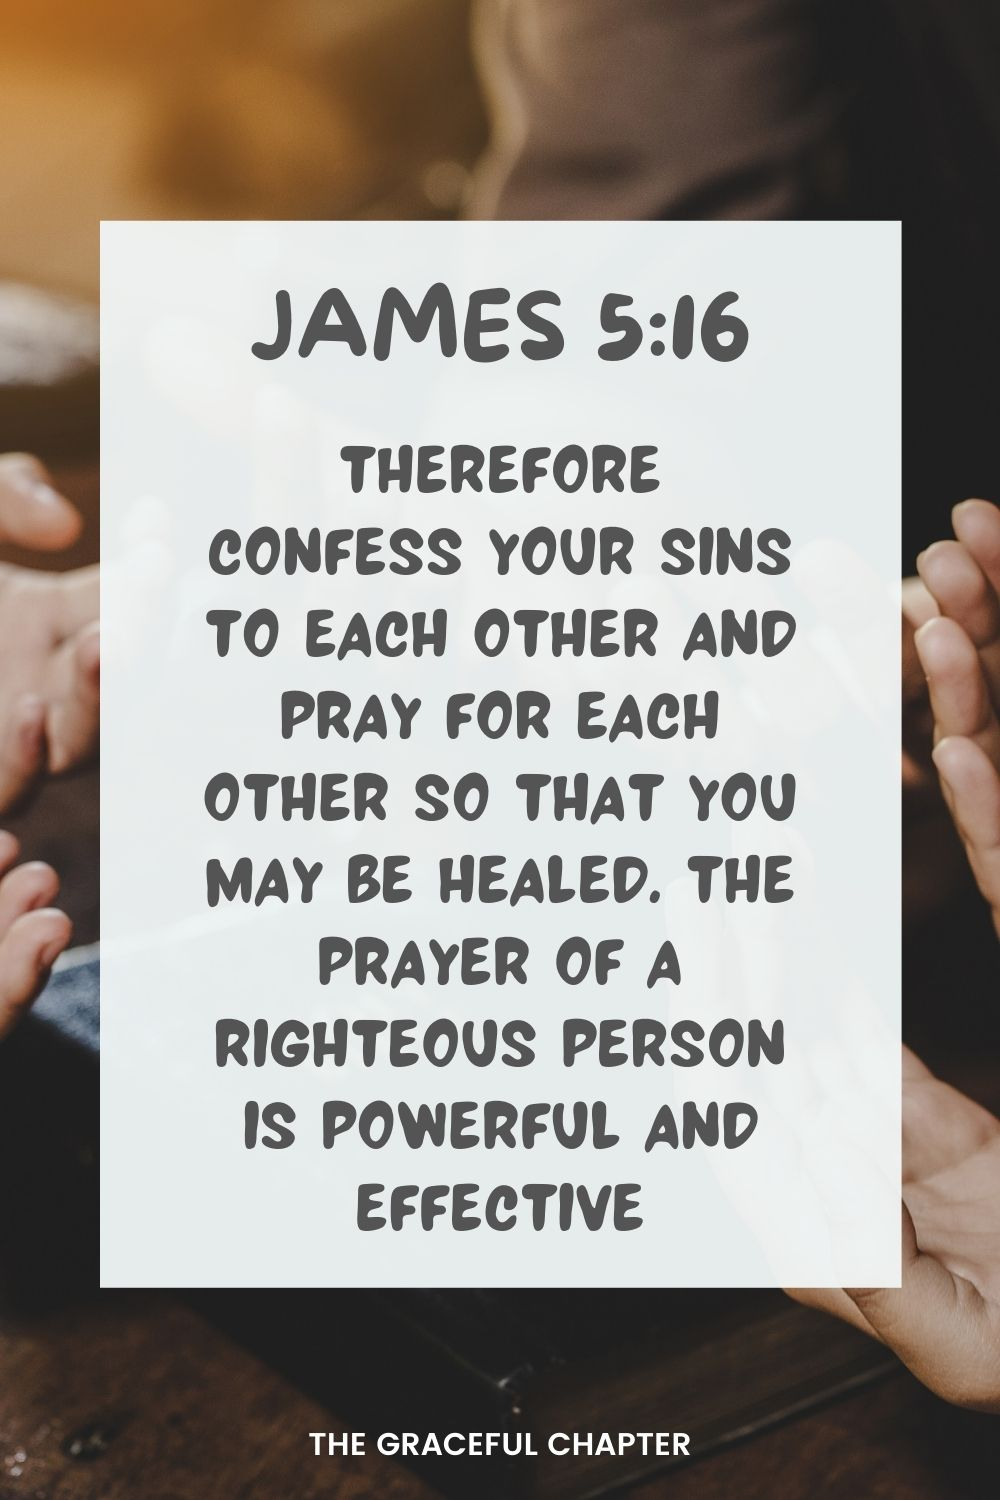 Therefore confess your sins to each other and pray for each other so that you may be healed. The prayer of a righteous person is powerful and effective. James 5:16